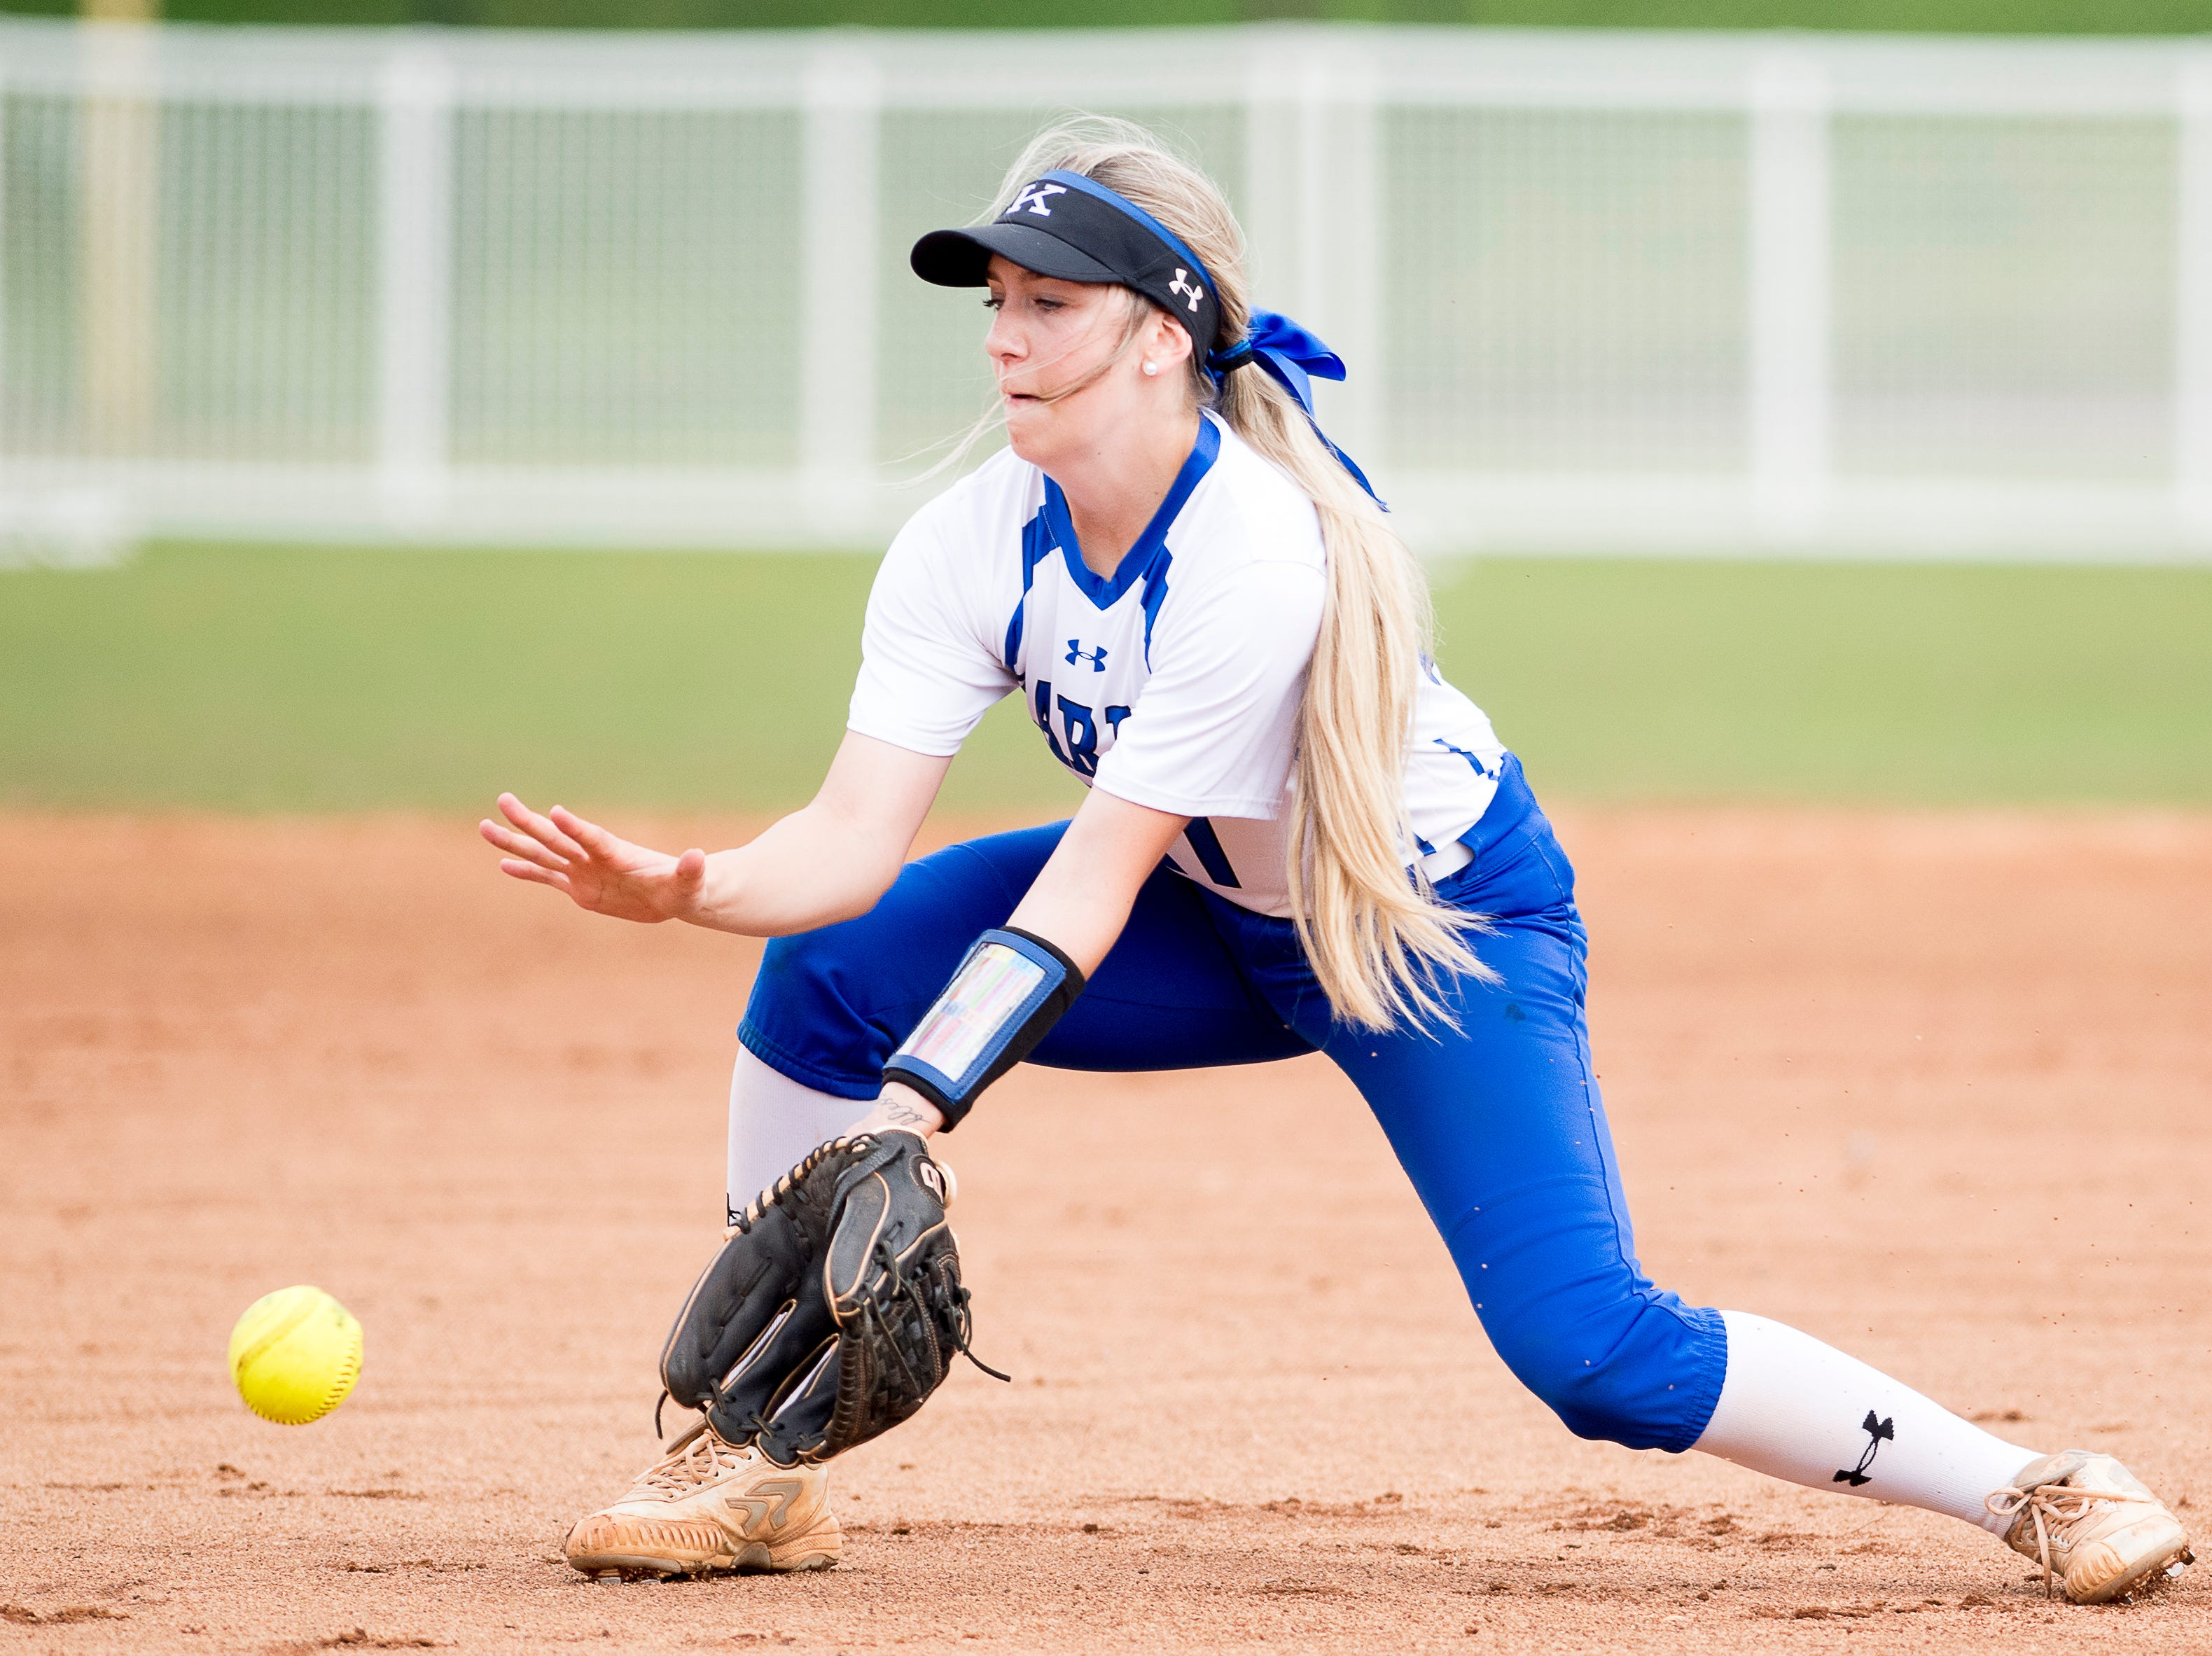 Karns' Jennifer Bezark (27) catches a ground ball during a softball game between Catholic and Karns at Caswell Park in Knoxville, Tennessee on Friday, April 12, 2019.